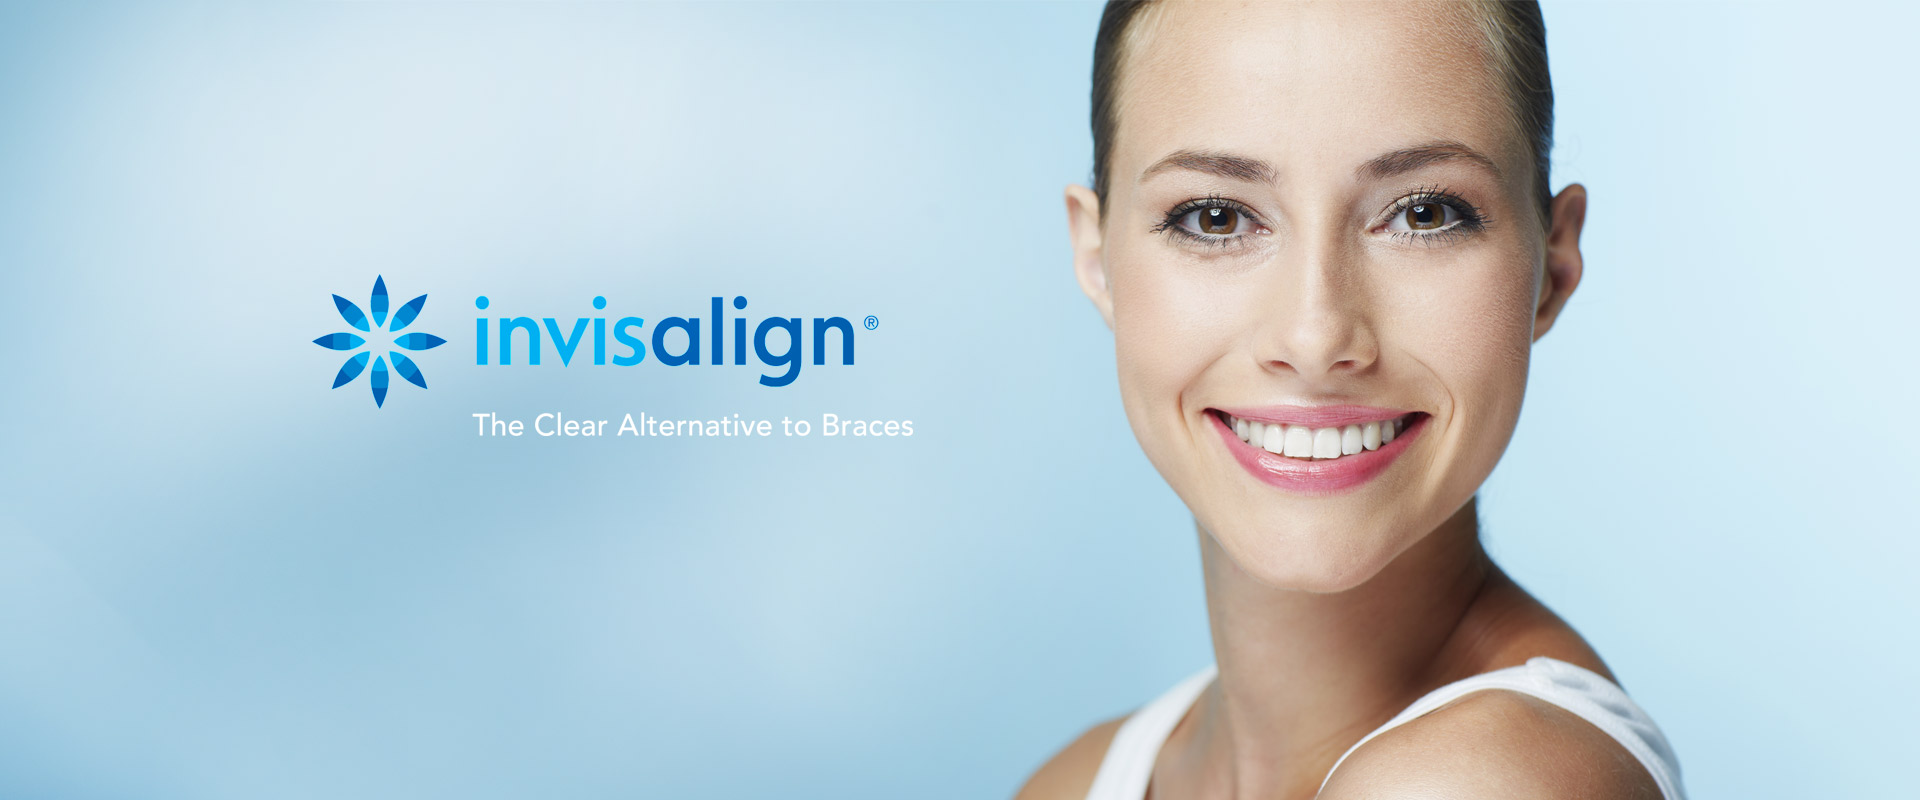 invisalign south orange nj